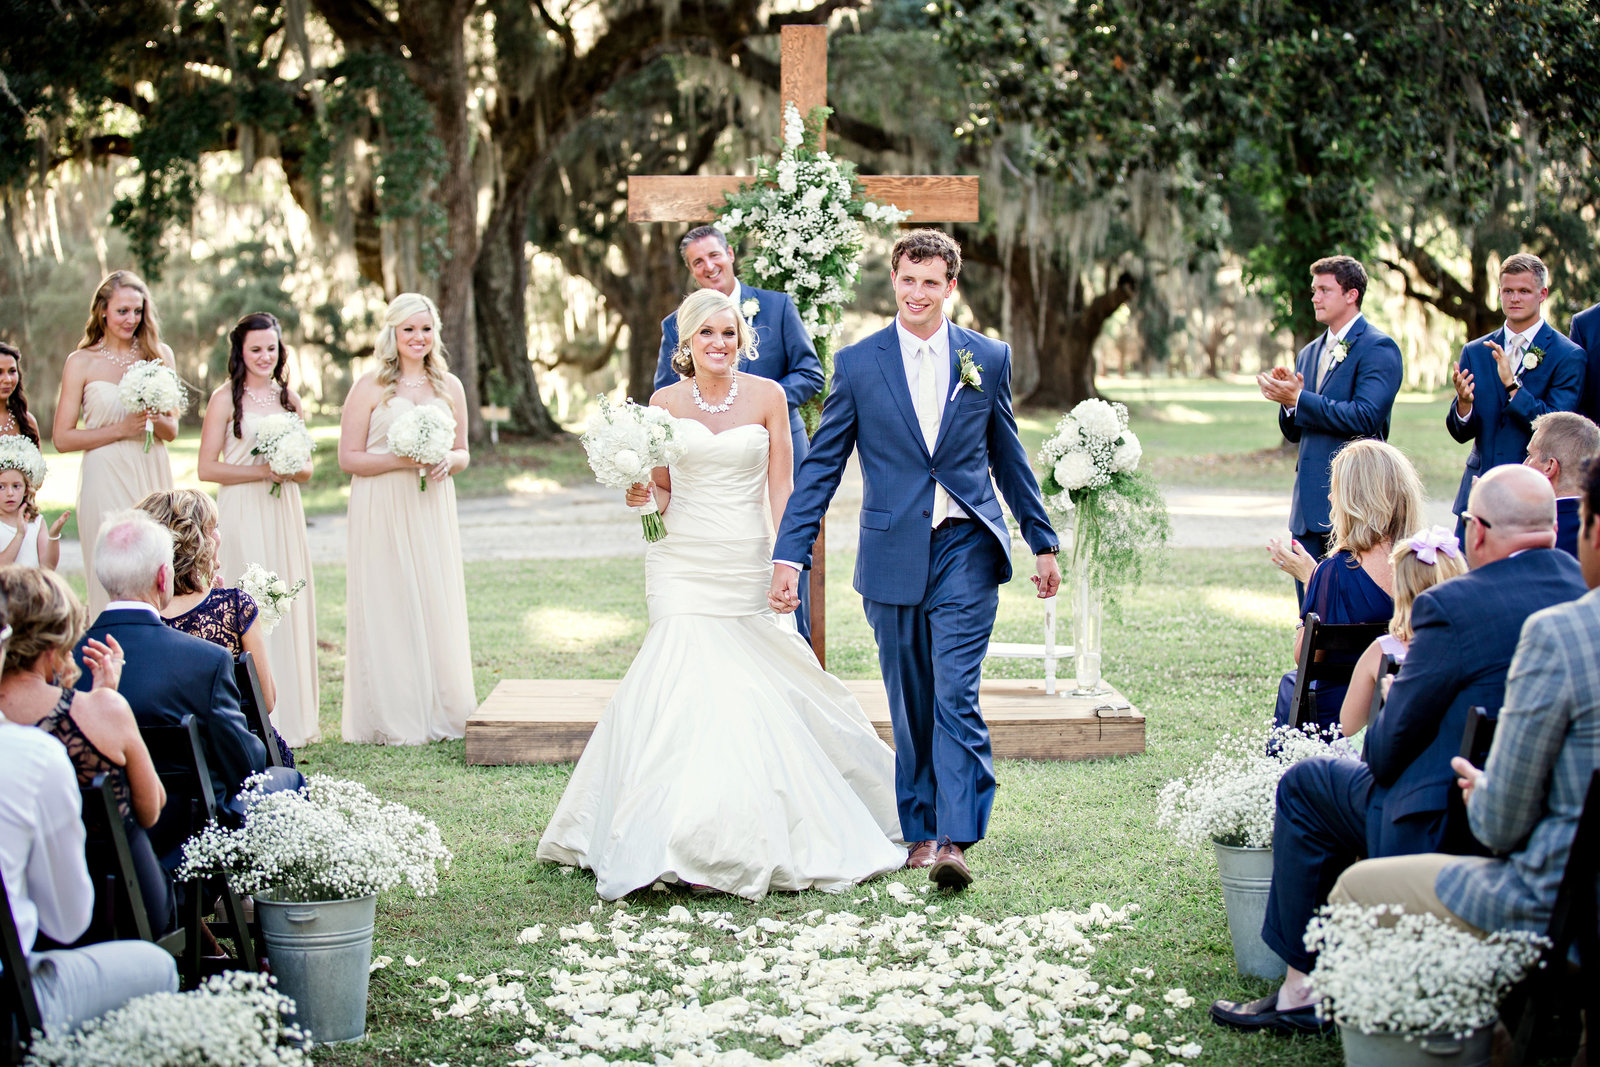 Exiting their Charleston Destination Wedding ceremony by Knoxville Wedding Photographer, Amanda May Photos.